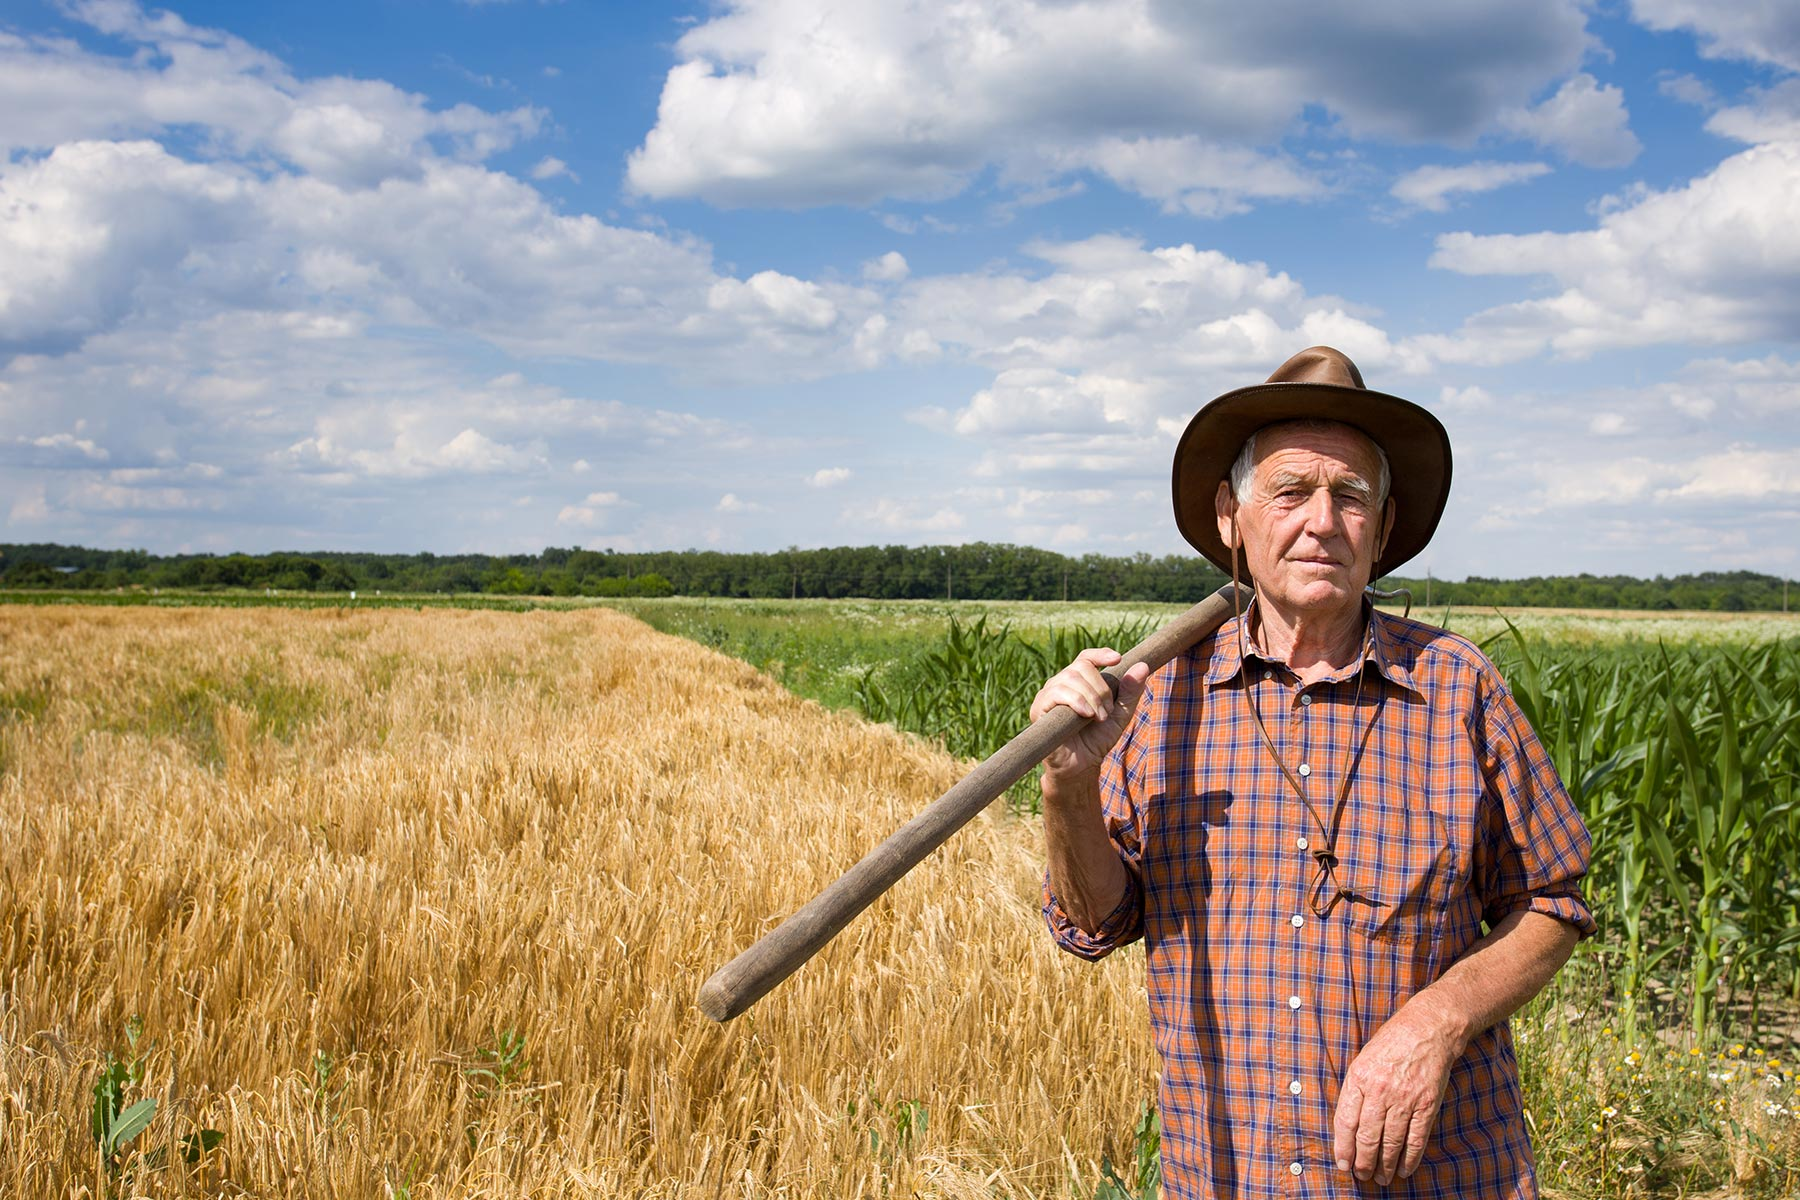 Regional and remote farmer standing in a field